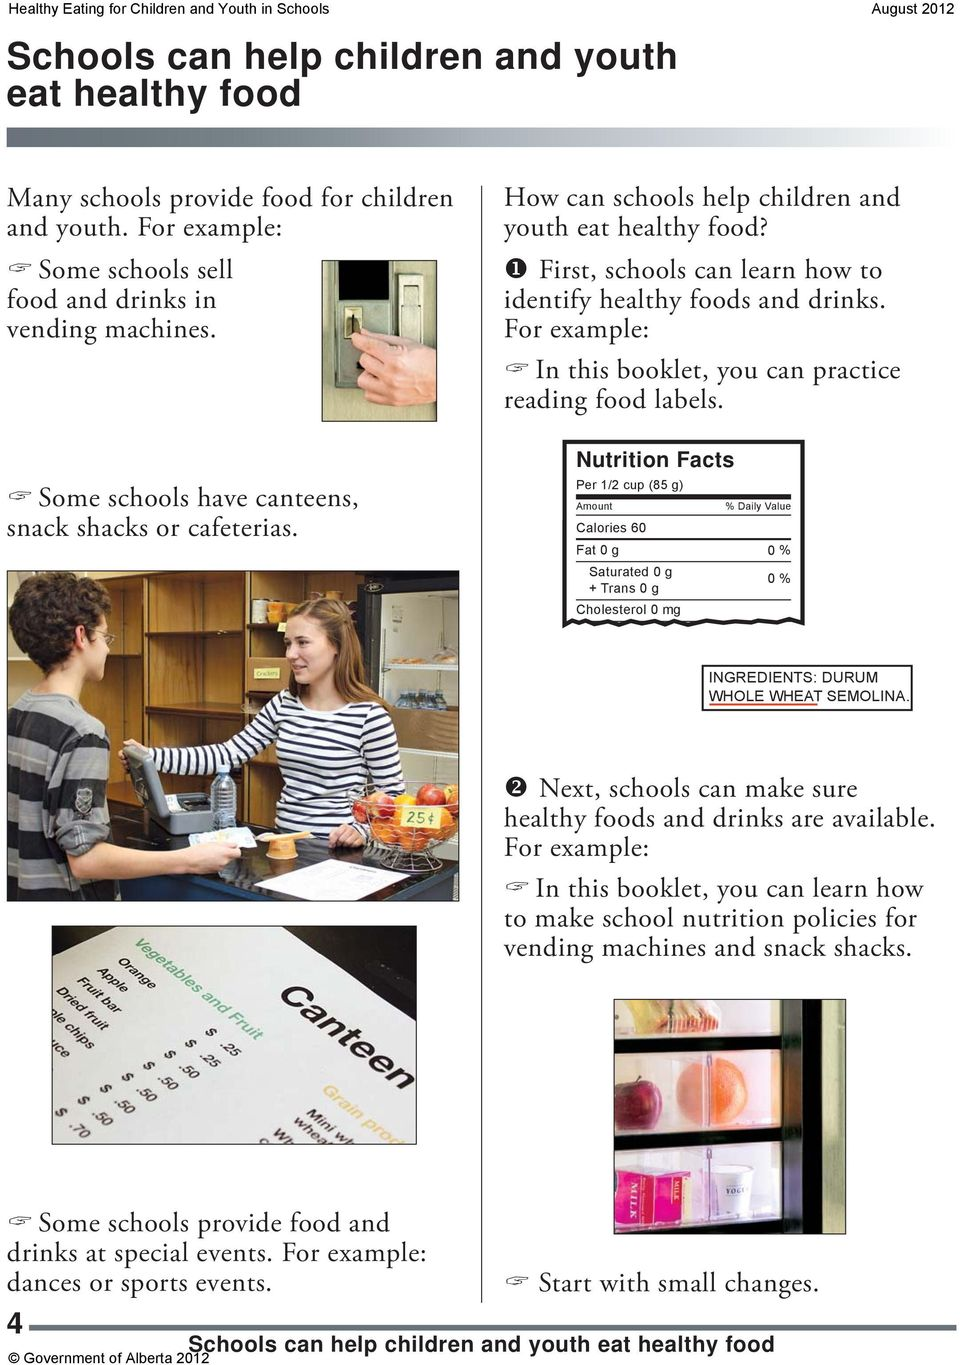 For example: In this booklet, you can practice reading food labels.